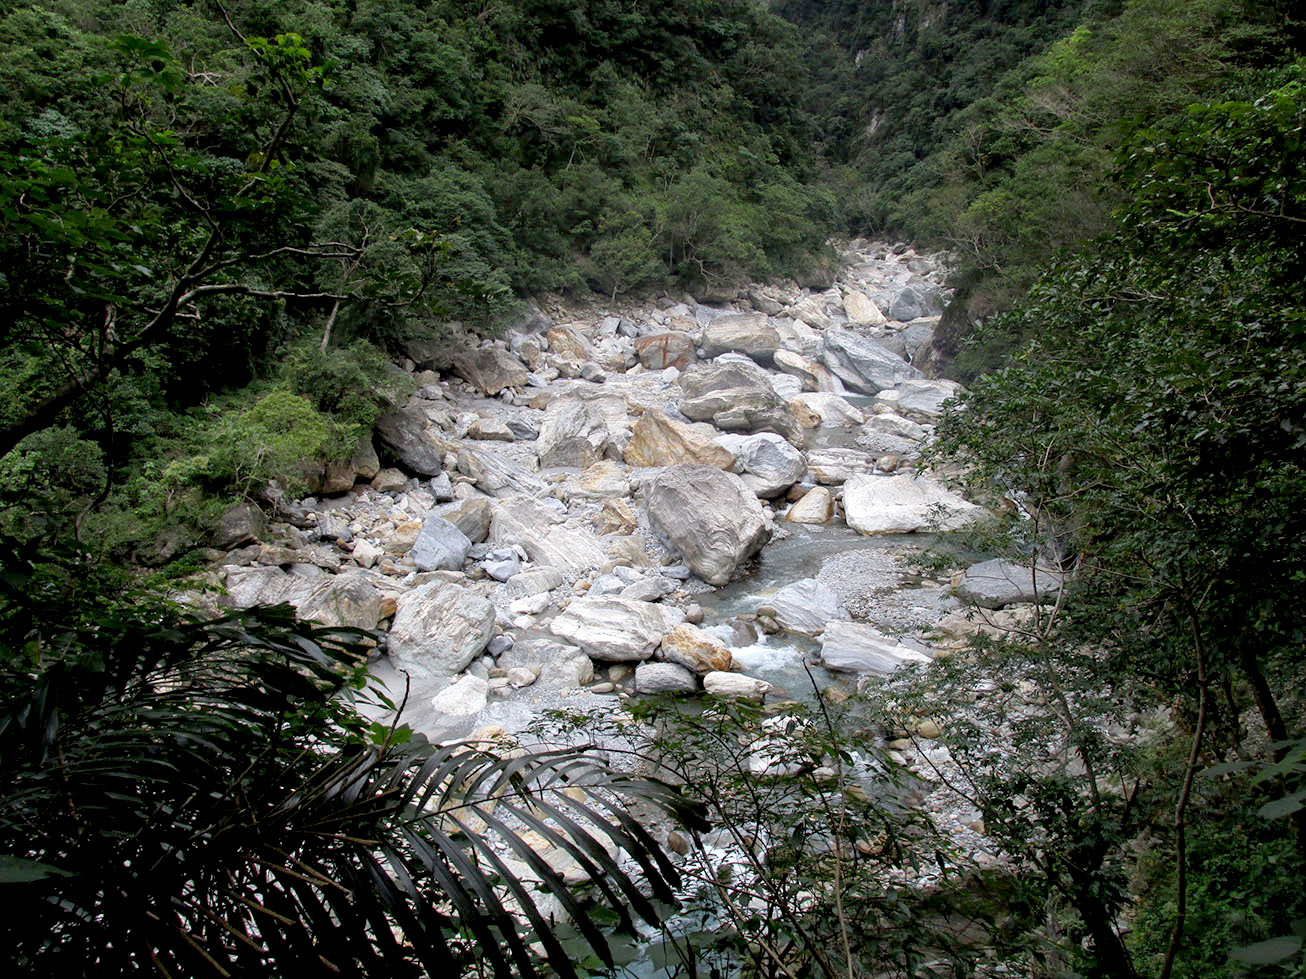 One of the tiny rivers